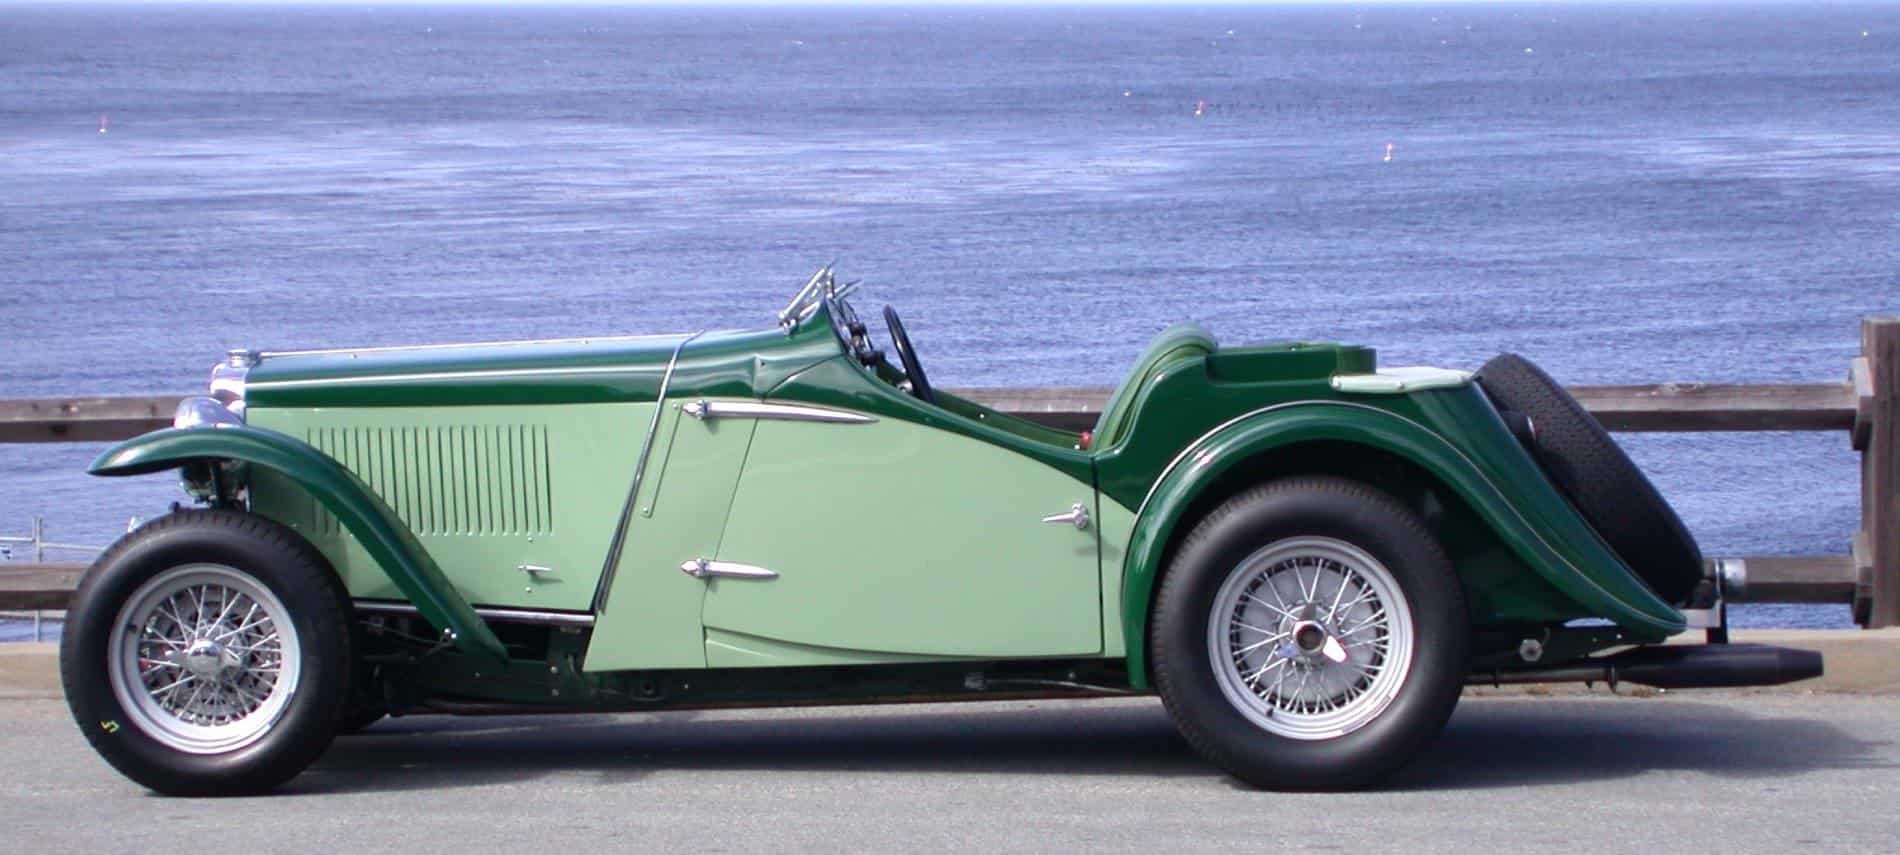 Old classic car in light green and dark green paint parked alongside the Pacific Ocean